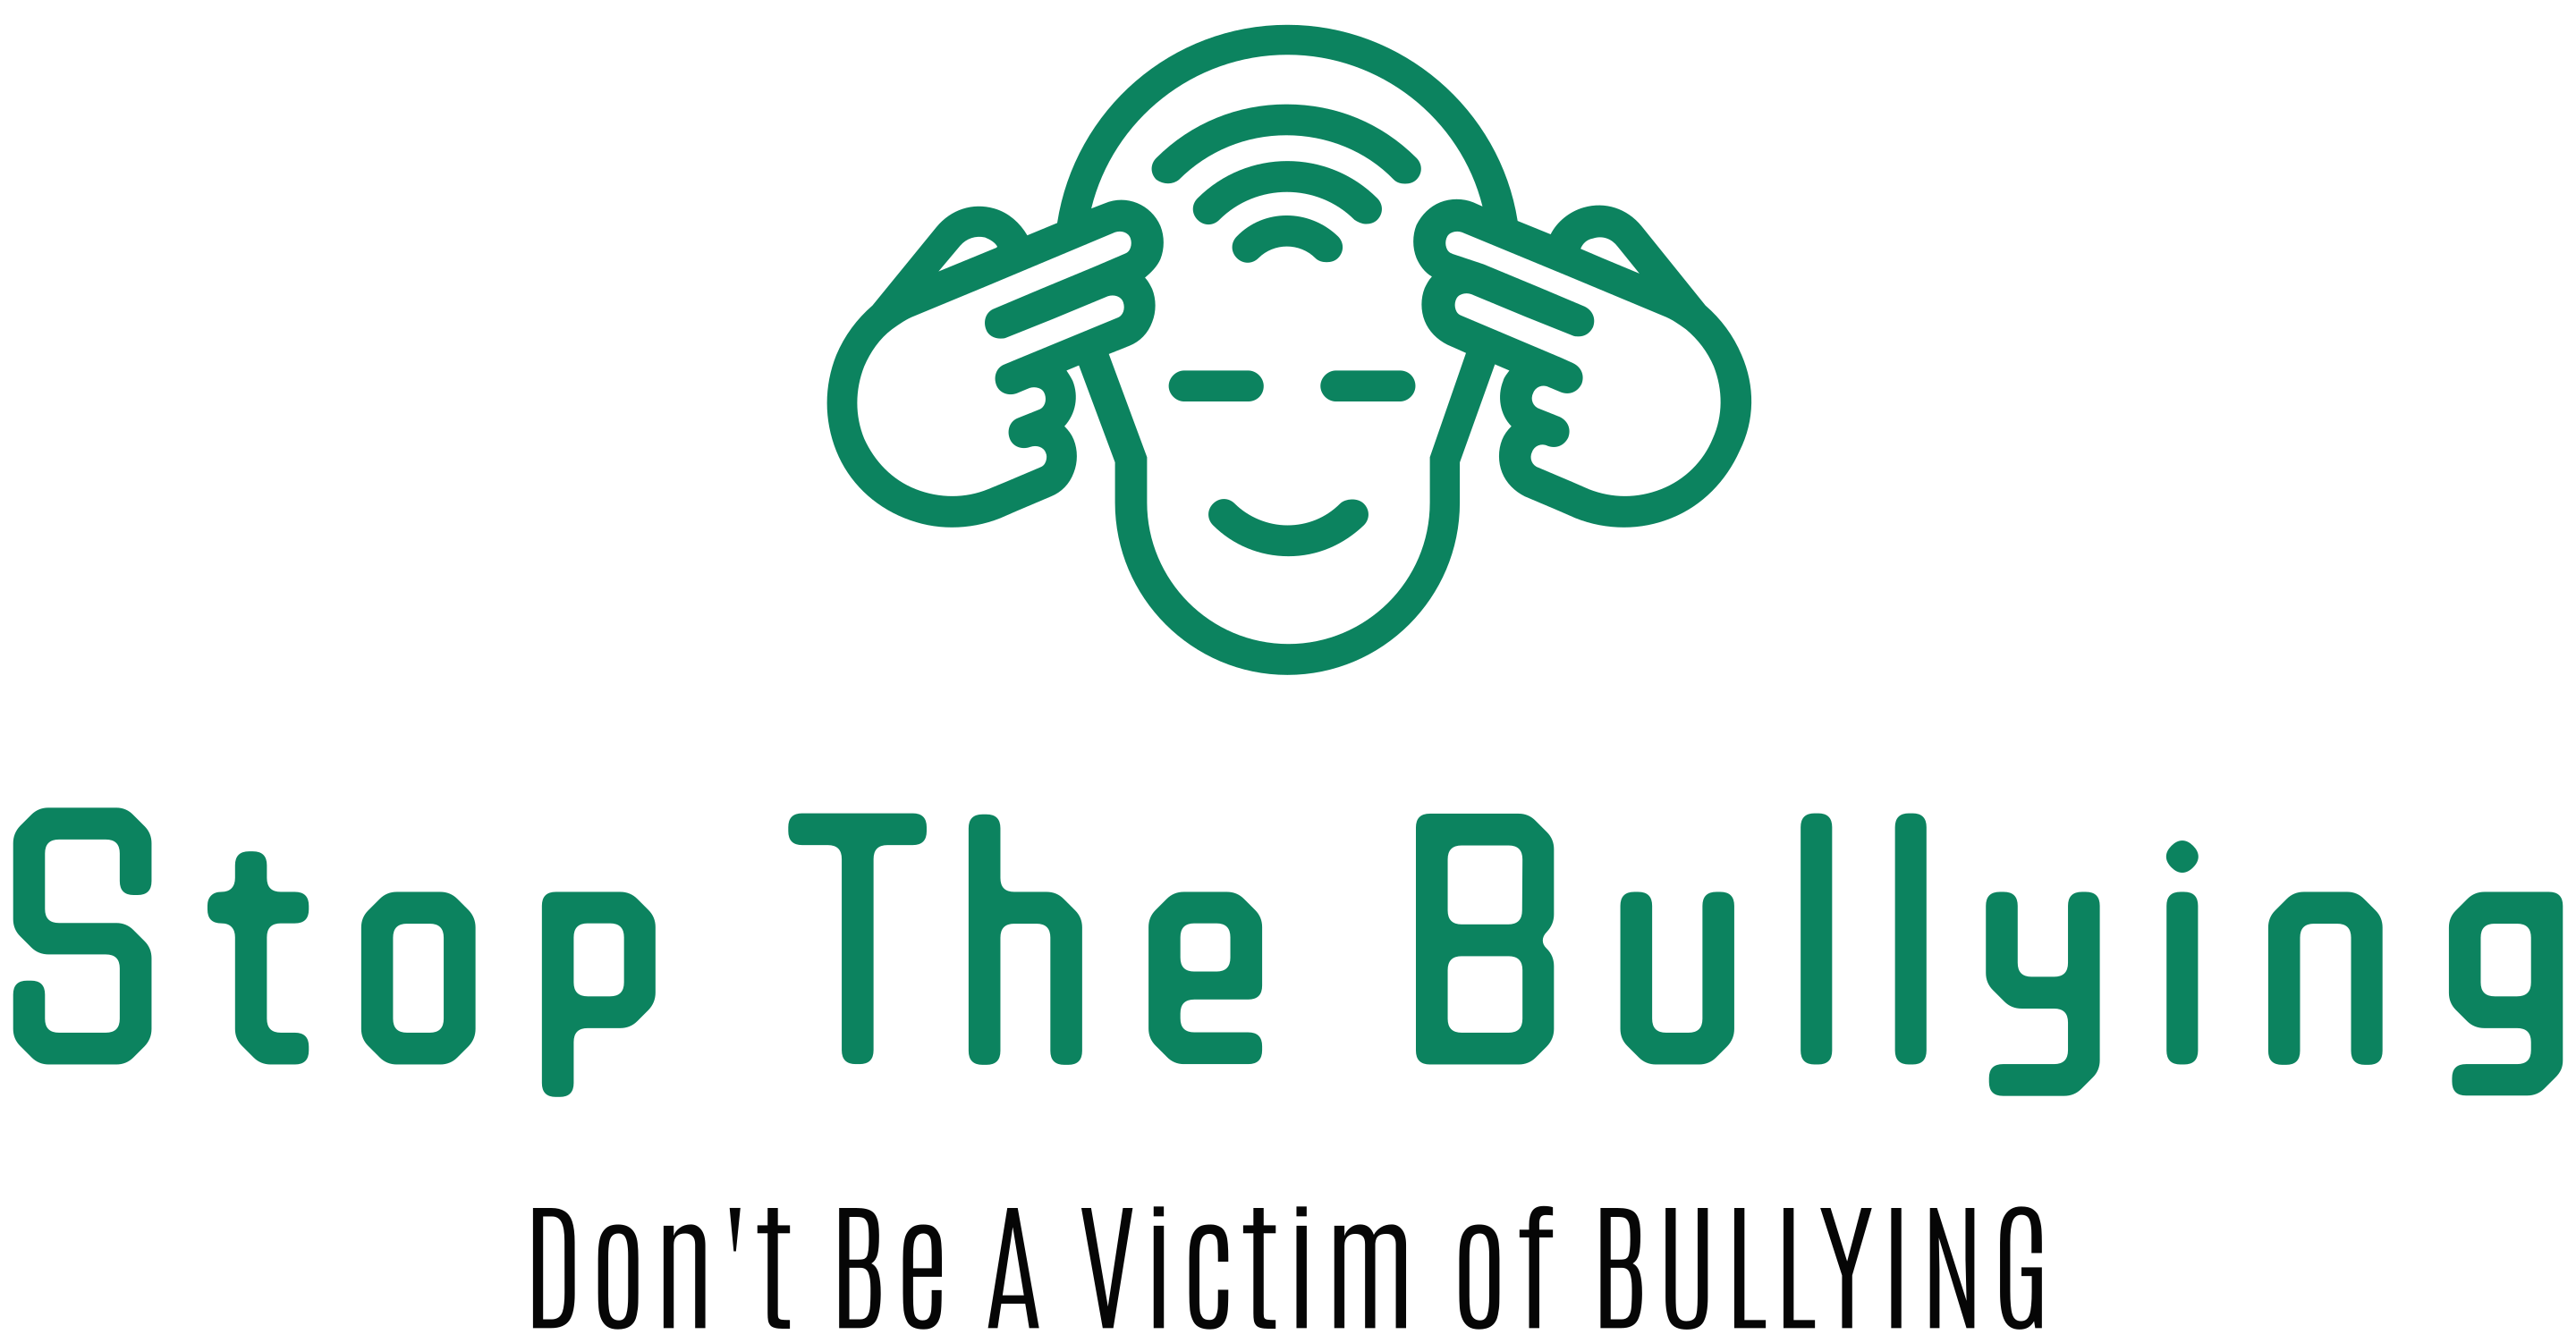 You Stop The Bullying